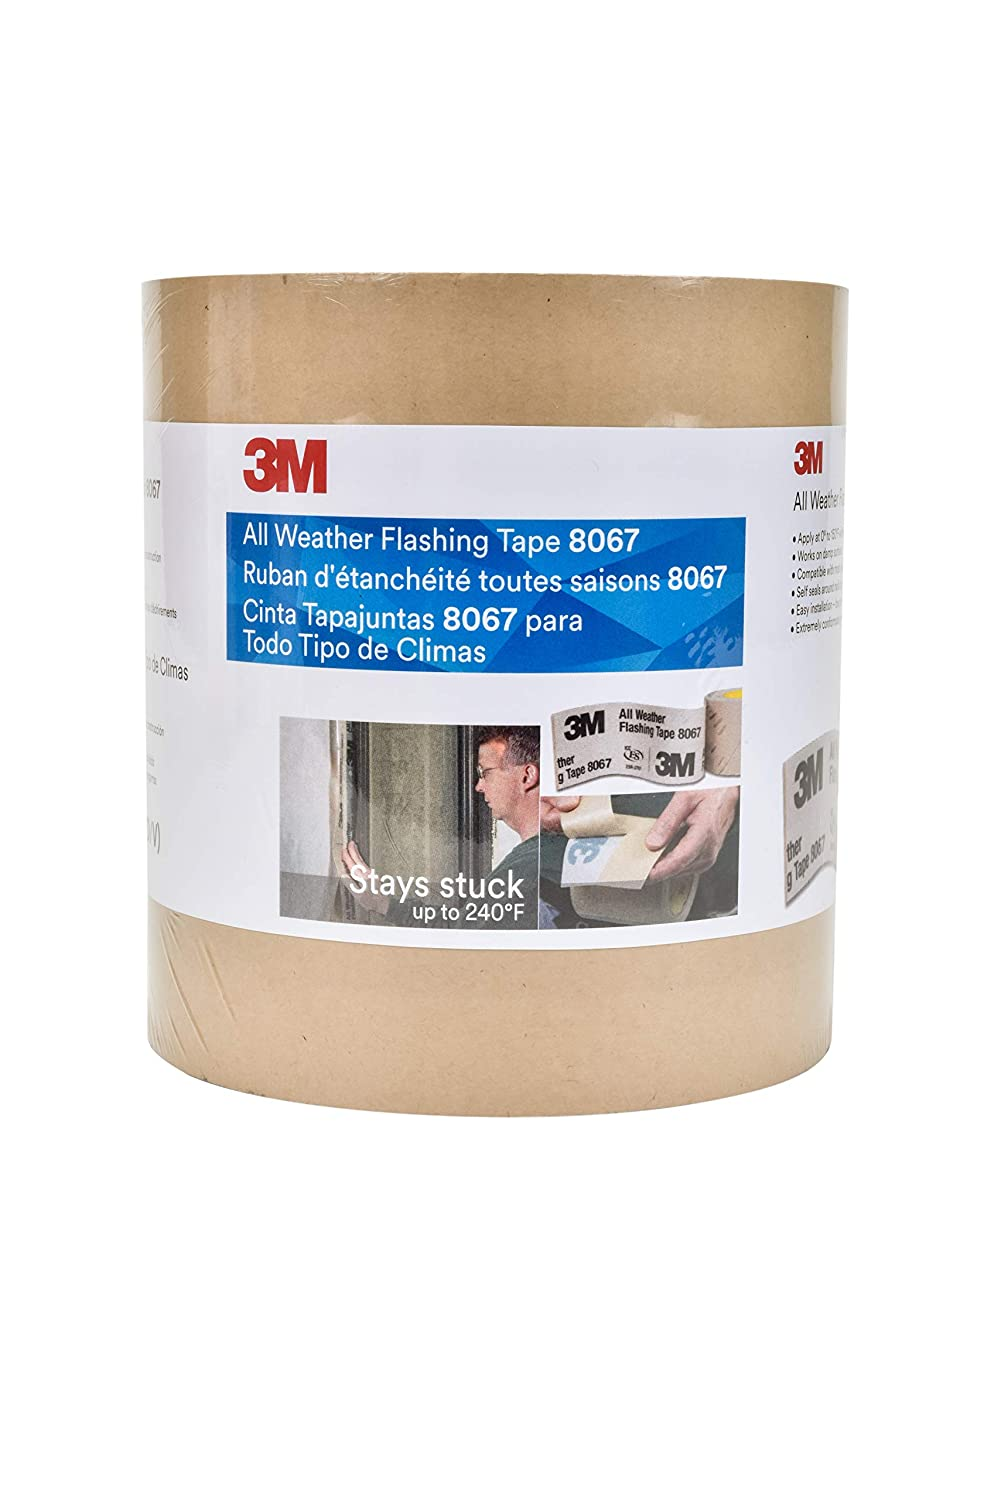 3M All Weather Flashing Tape 8067 Tan, 6 in x 75 ft